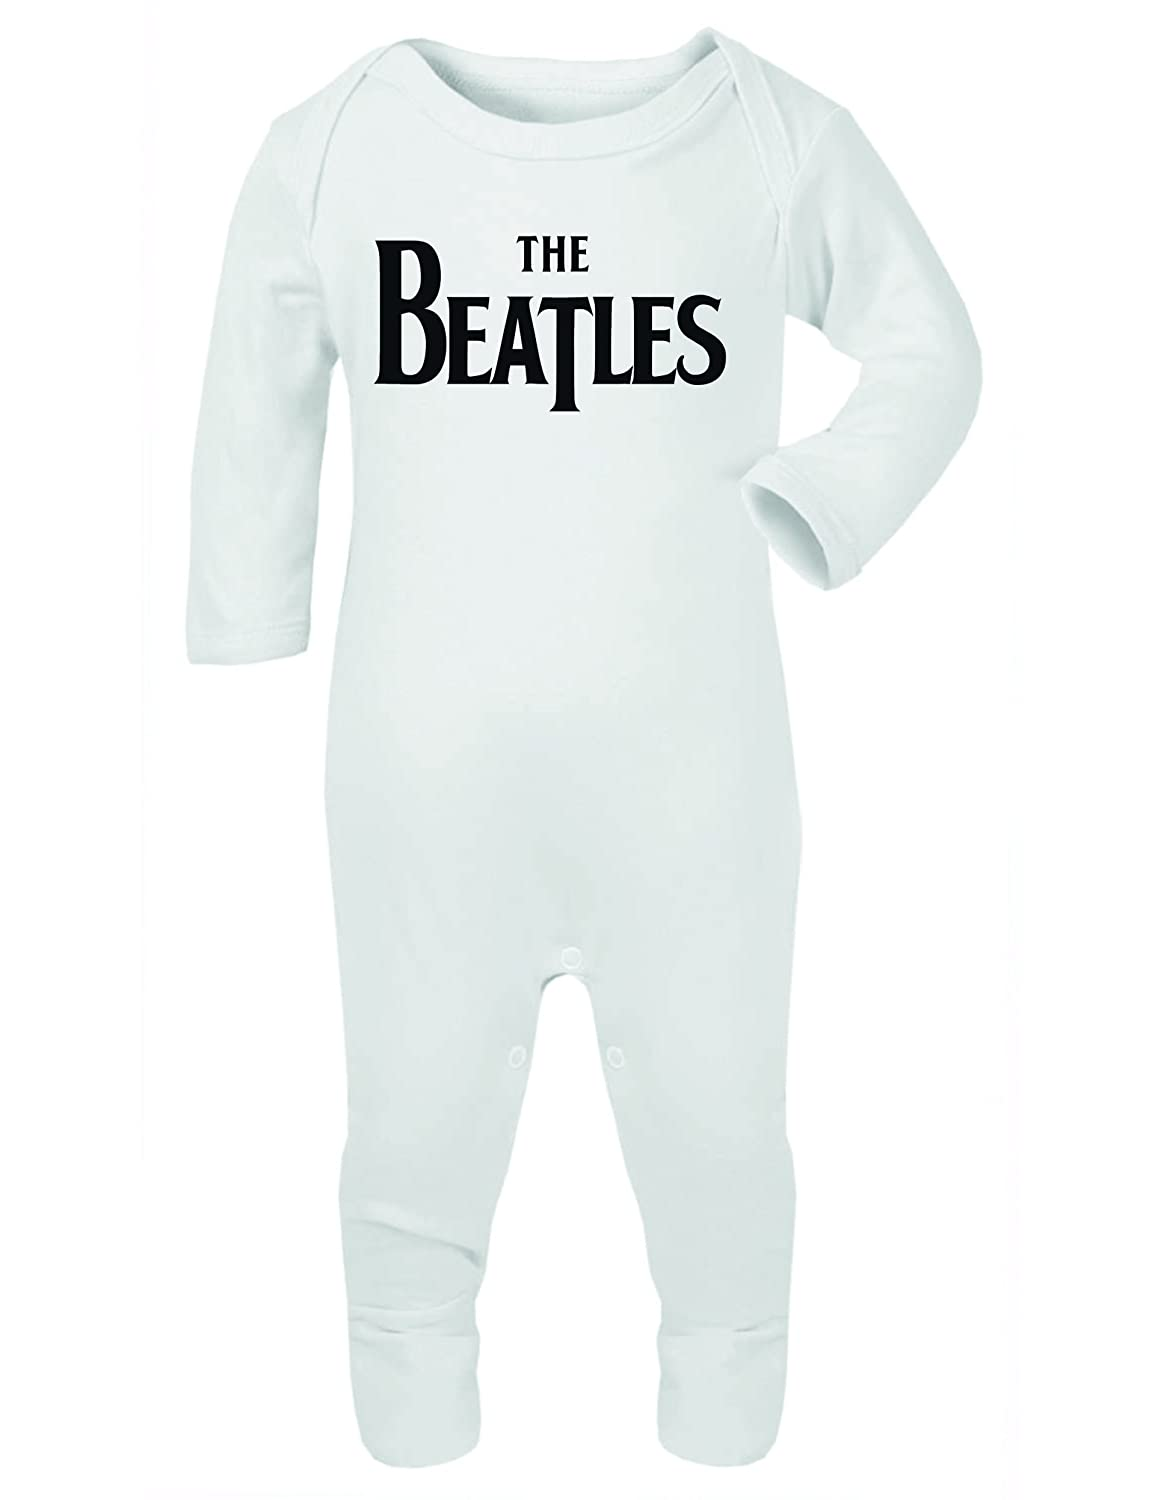 The Beatles Baby Grow Rompersuit Onesie Sleepsuit 3 6 Months White